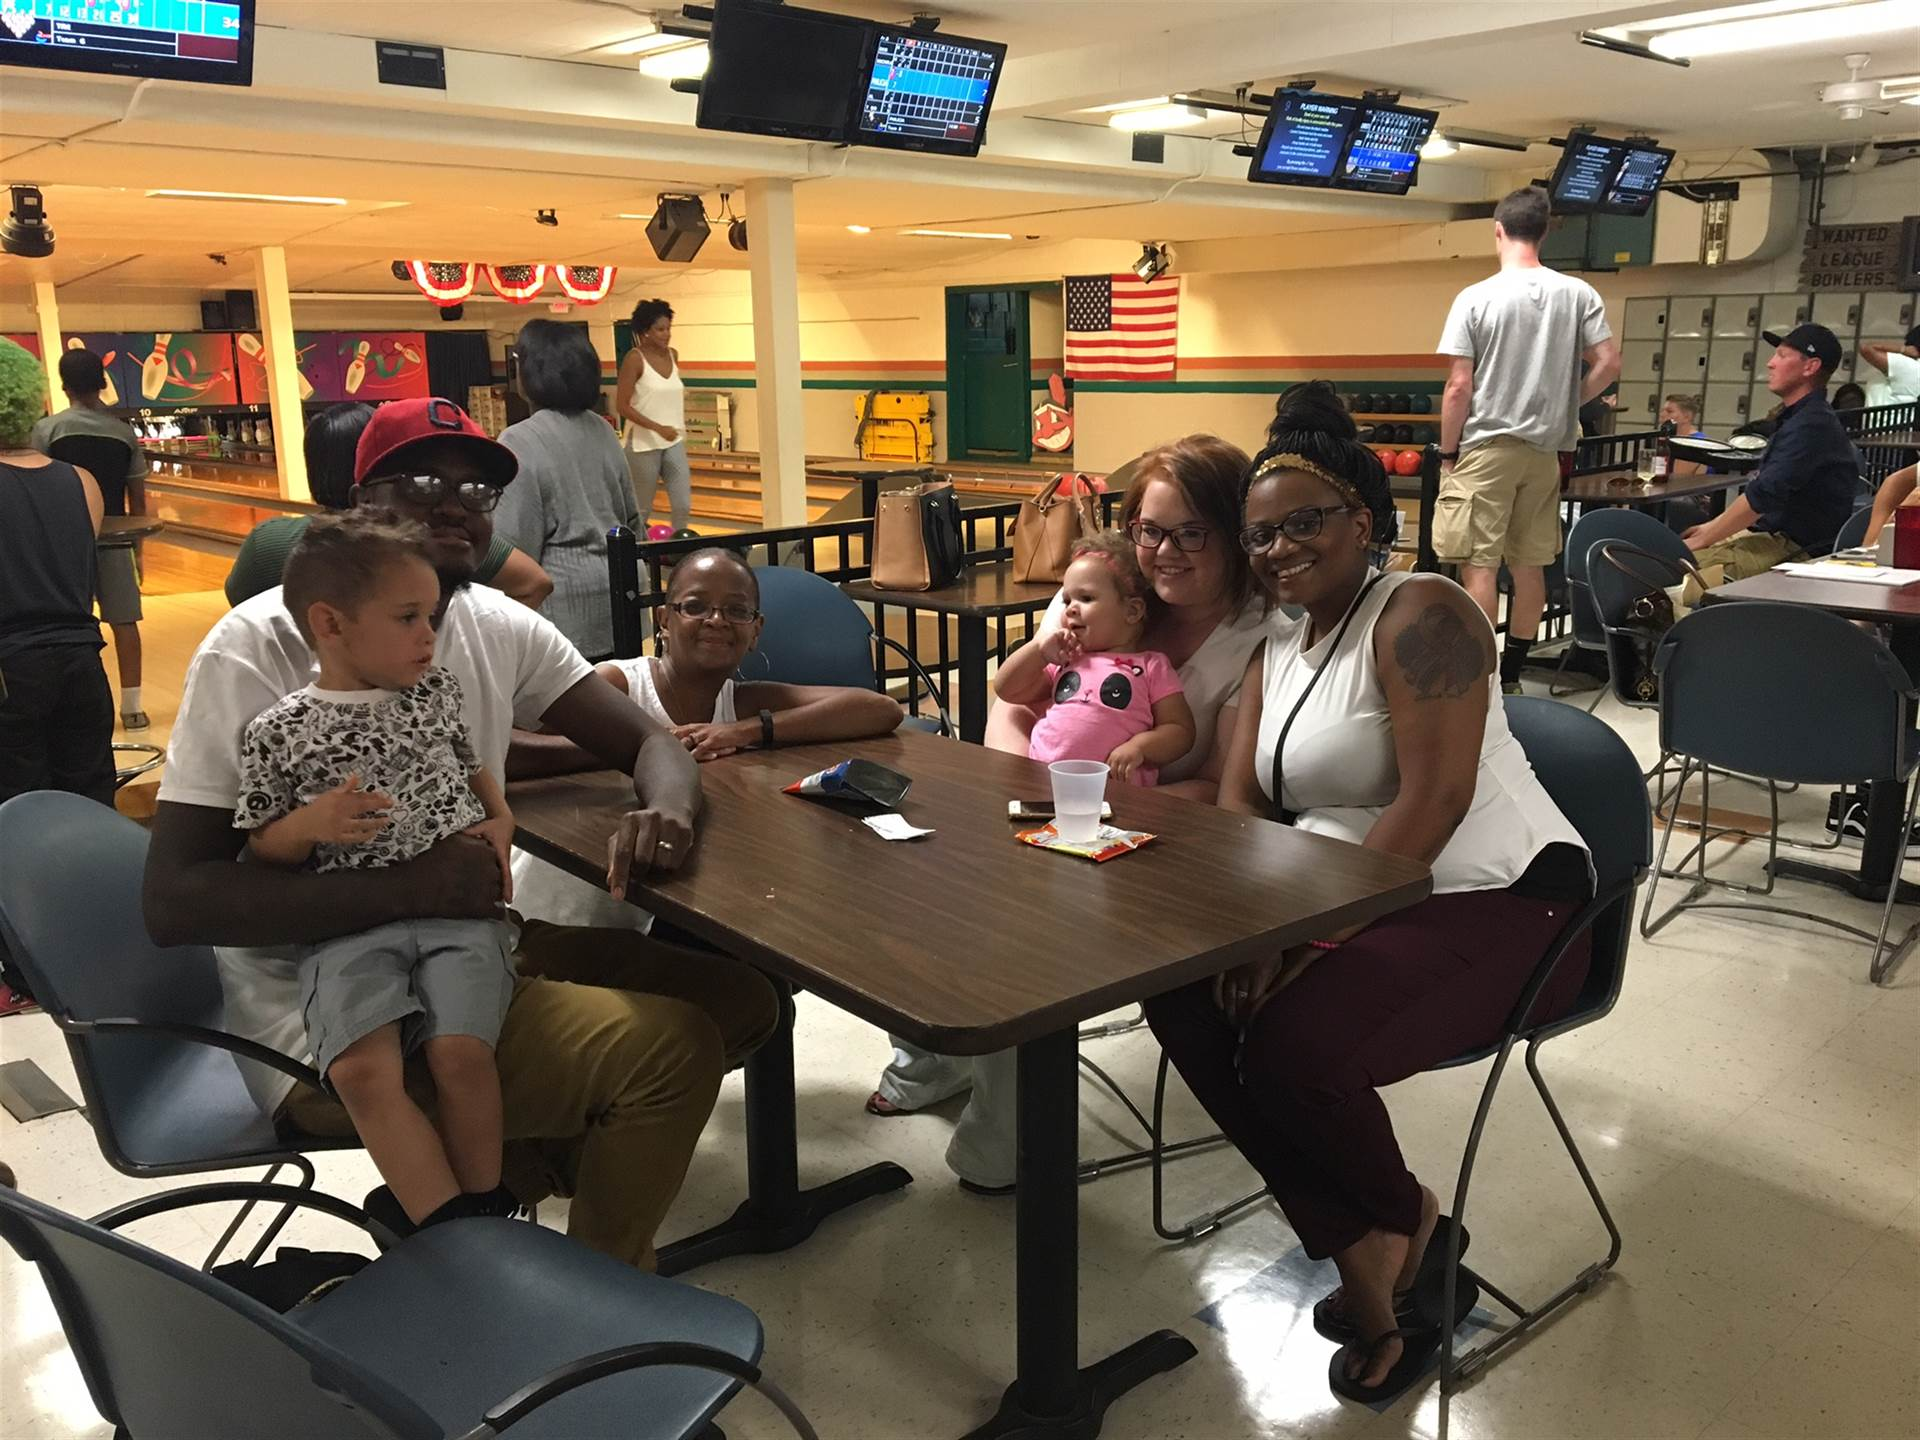 Families enjoying cosmic bowling